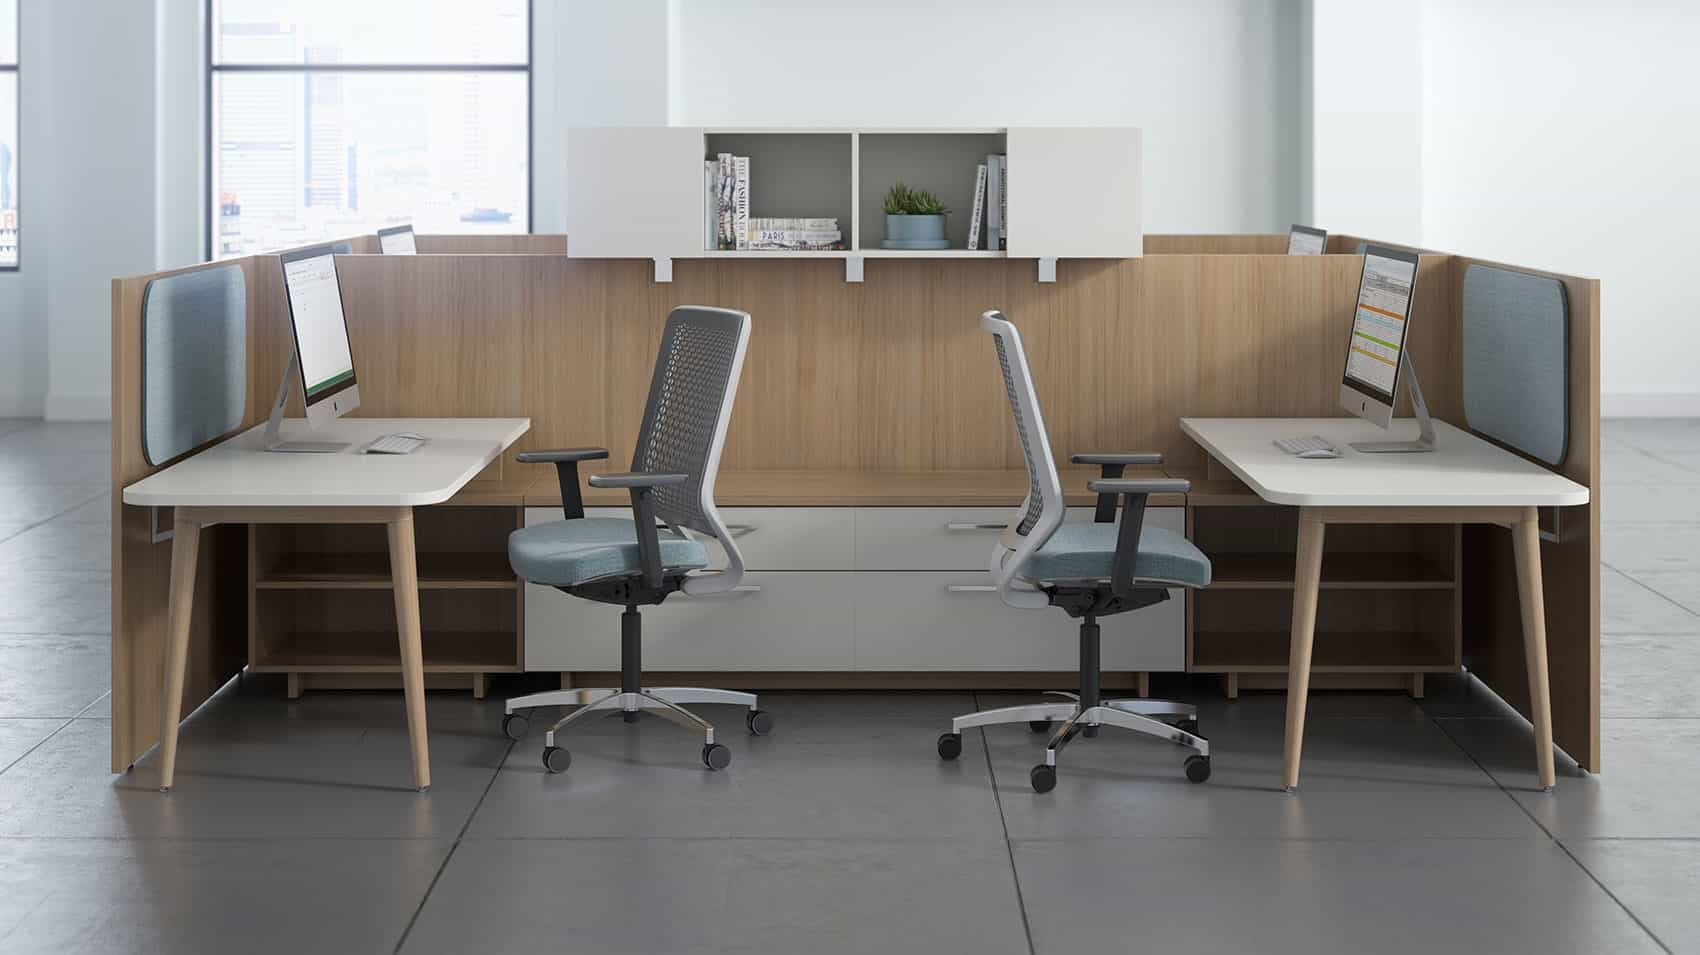 teammates commercial interiors | commercial office furniture dealer